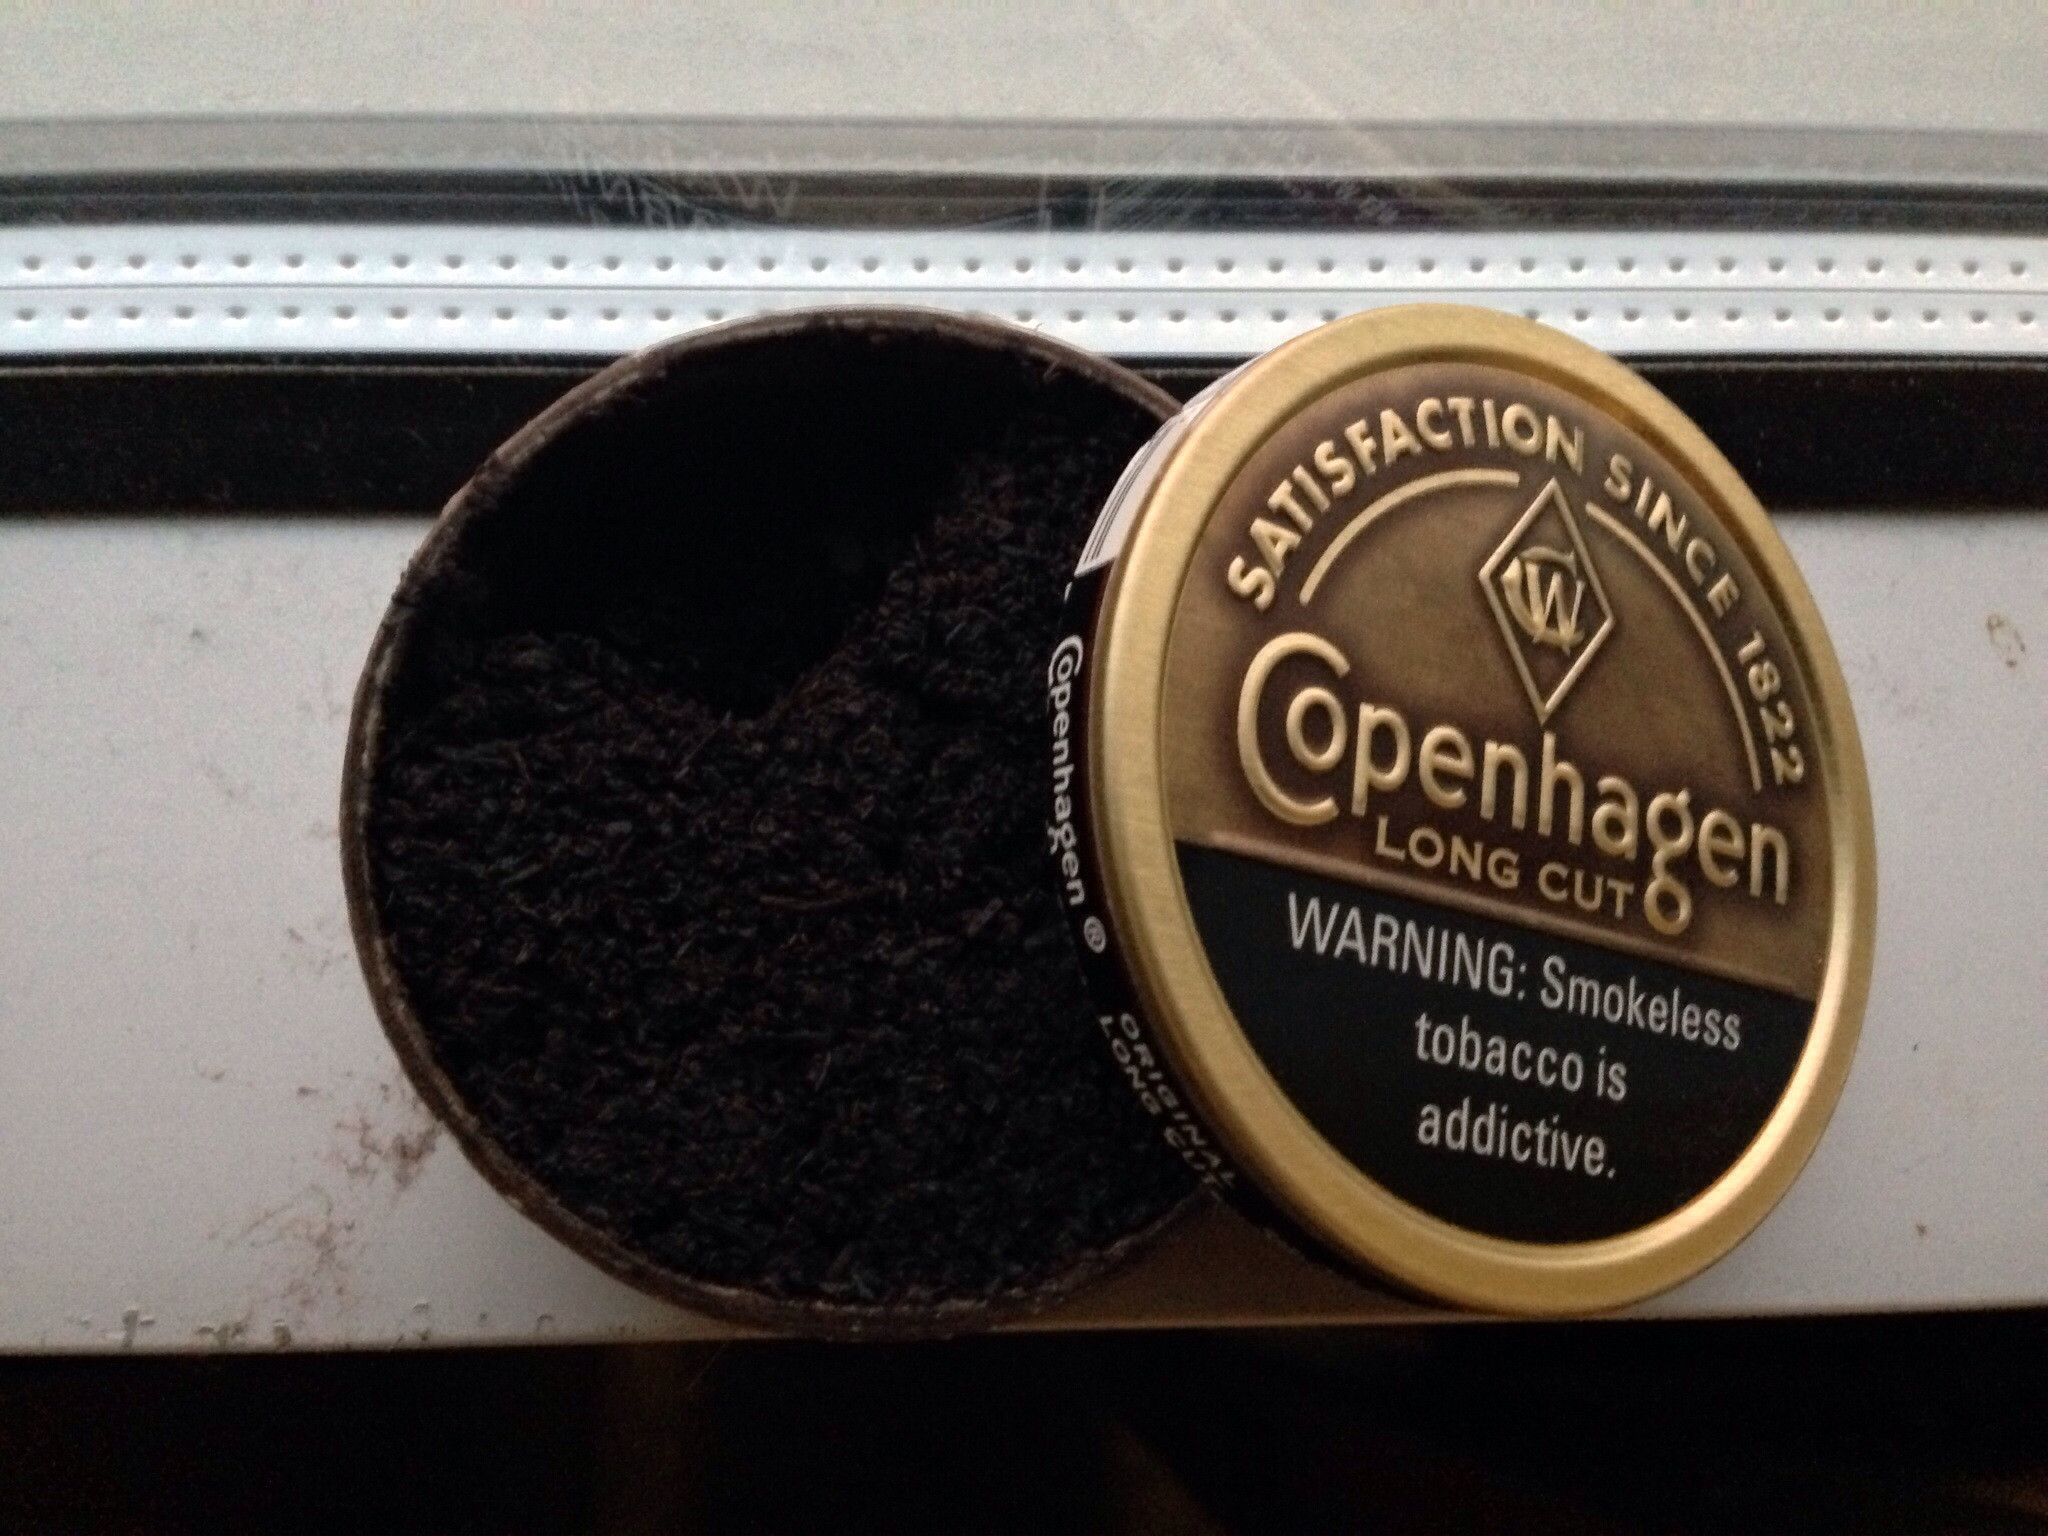 Res: 2048x1536, Missing pinch in my Copenhagen longcut.